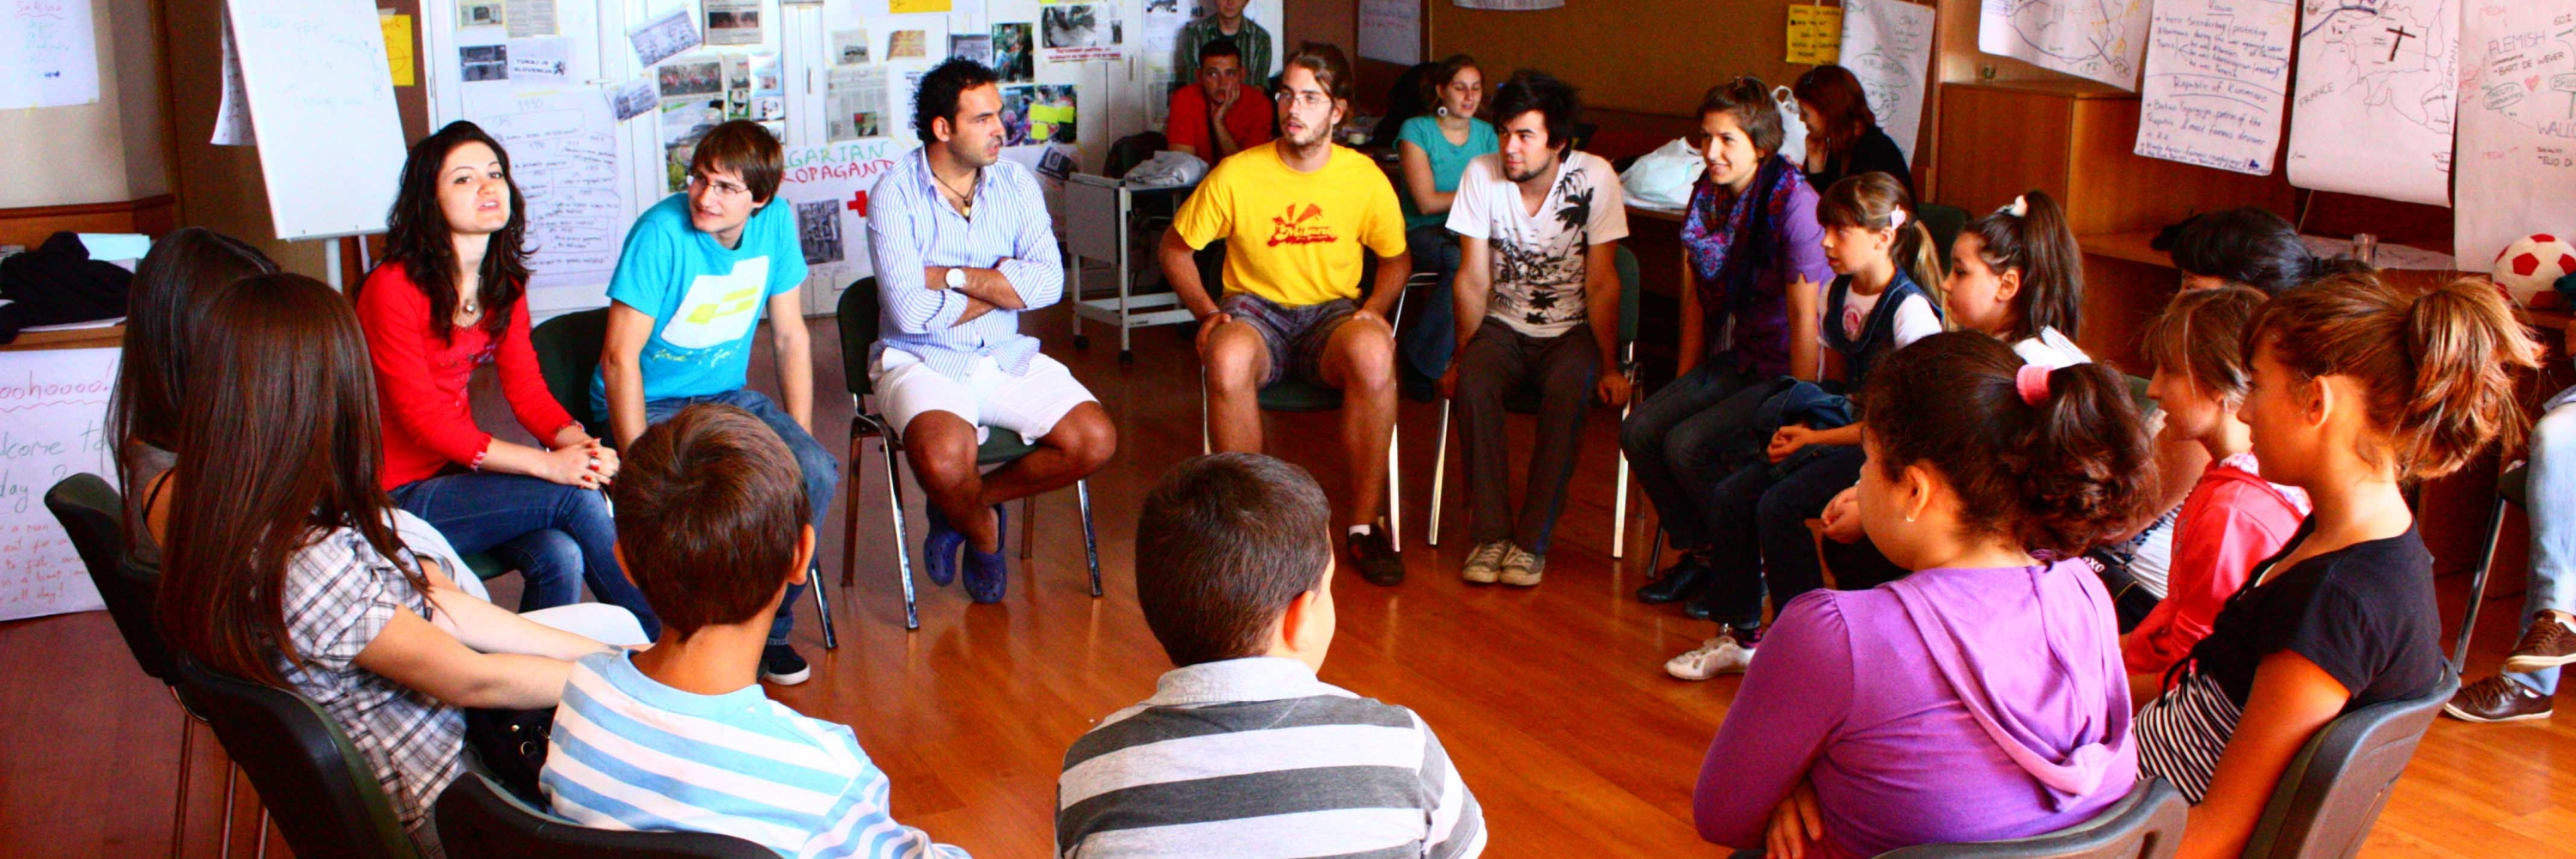 Volunteer to Facilitate Restorative Justice Dialogue - Oct. 3, 13-14, 20-21